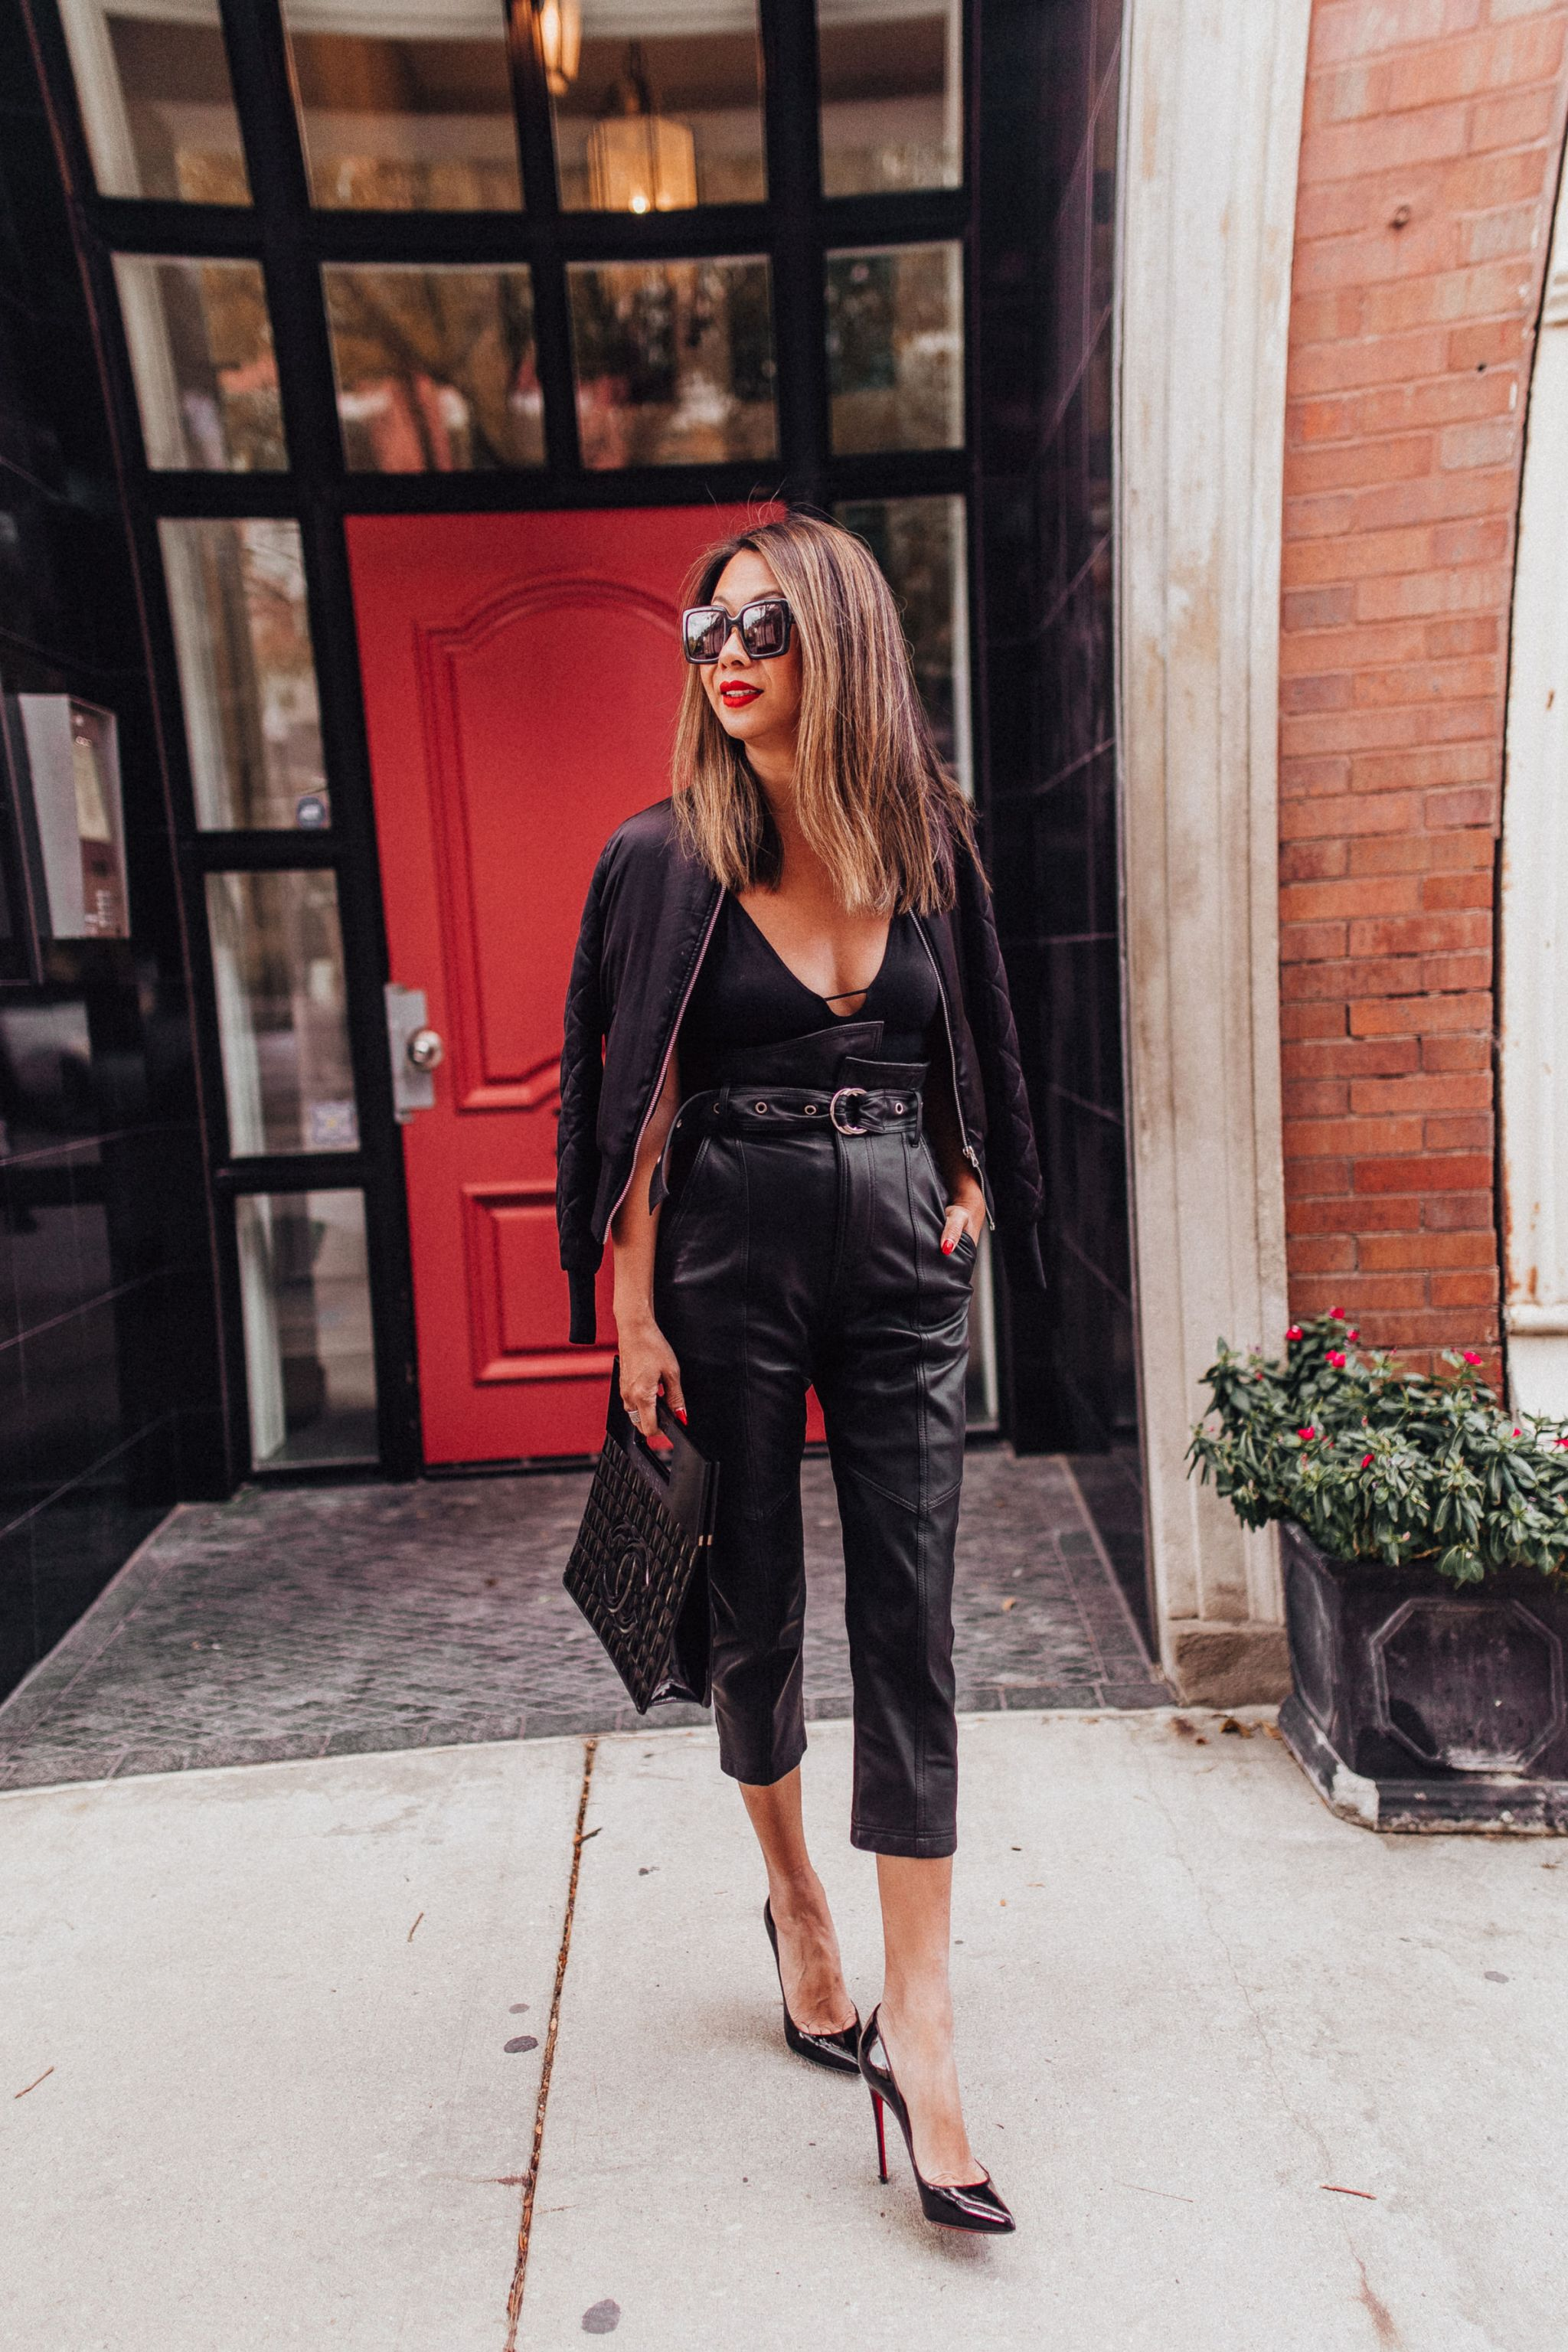 How to style leather pants, Marissa web leather pants, how to wear the leather pants trends, Jennifer Worman, Perfect leather pants for Fall, 3 items you need for Fall